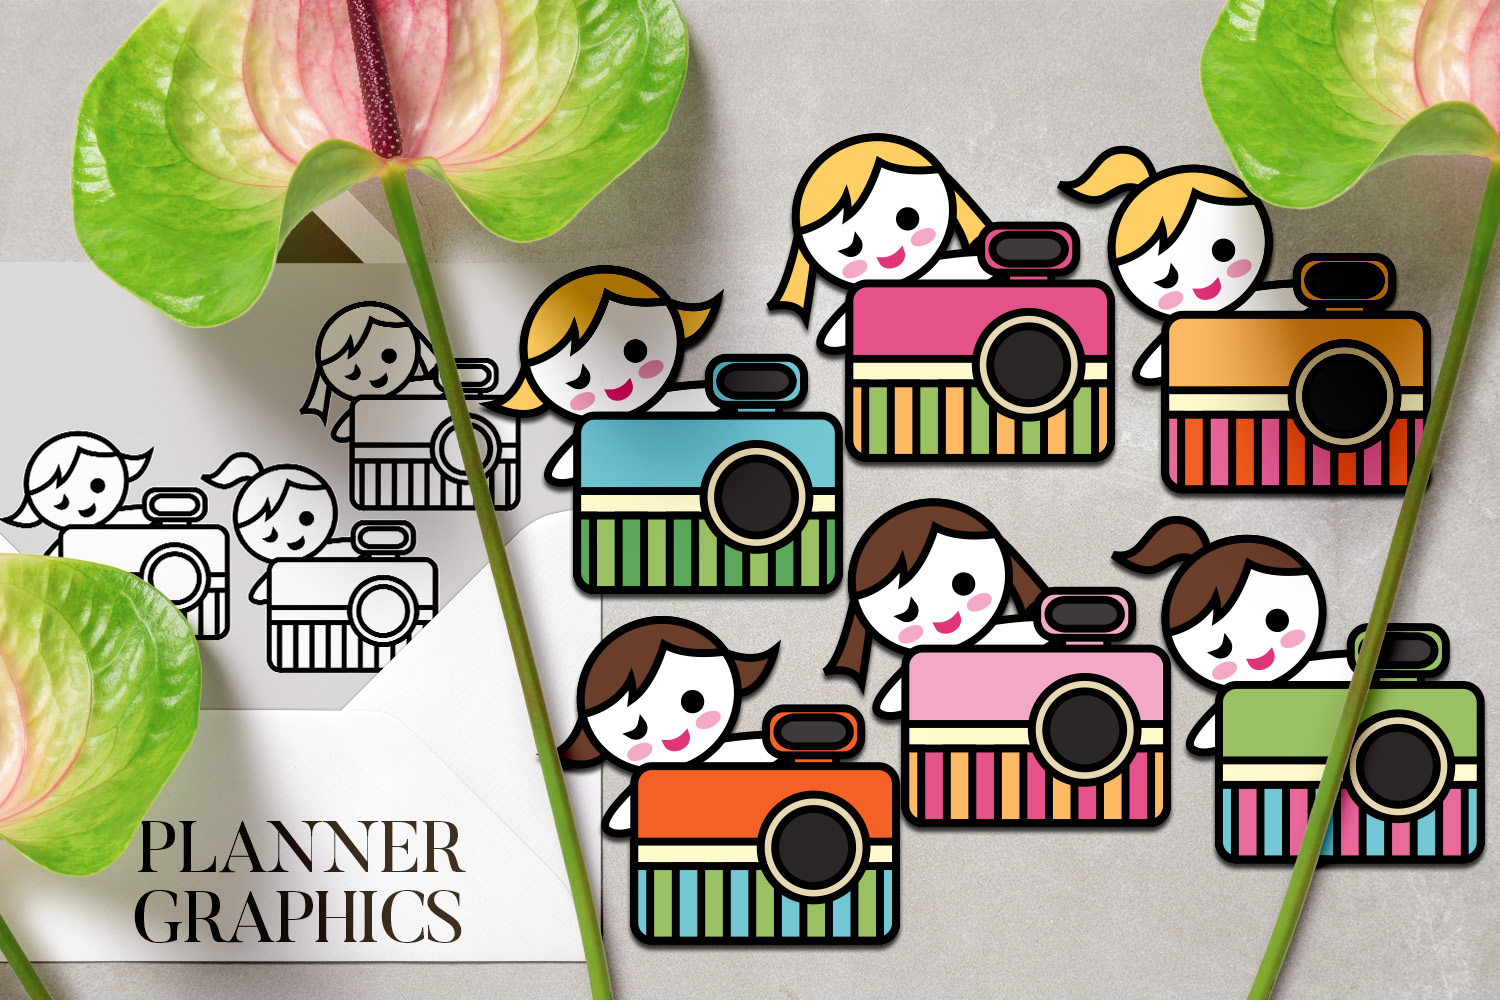 Hobby illustrations bundle - planner sticker graphics example image 4